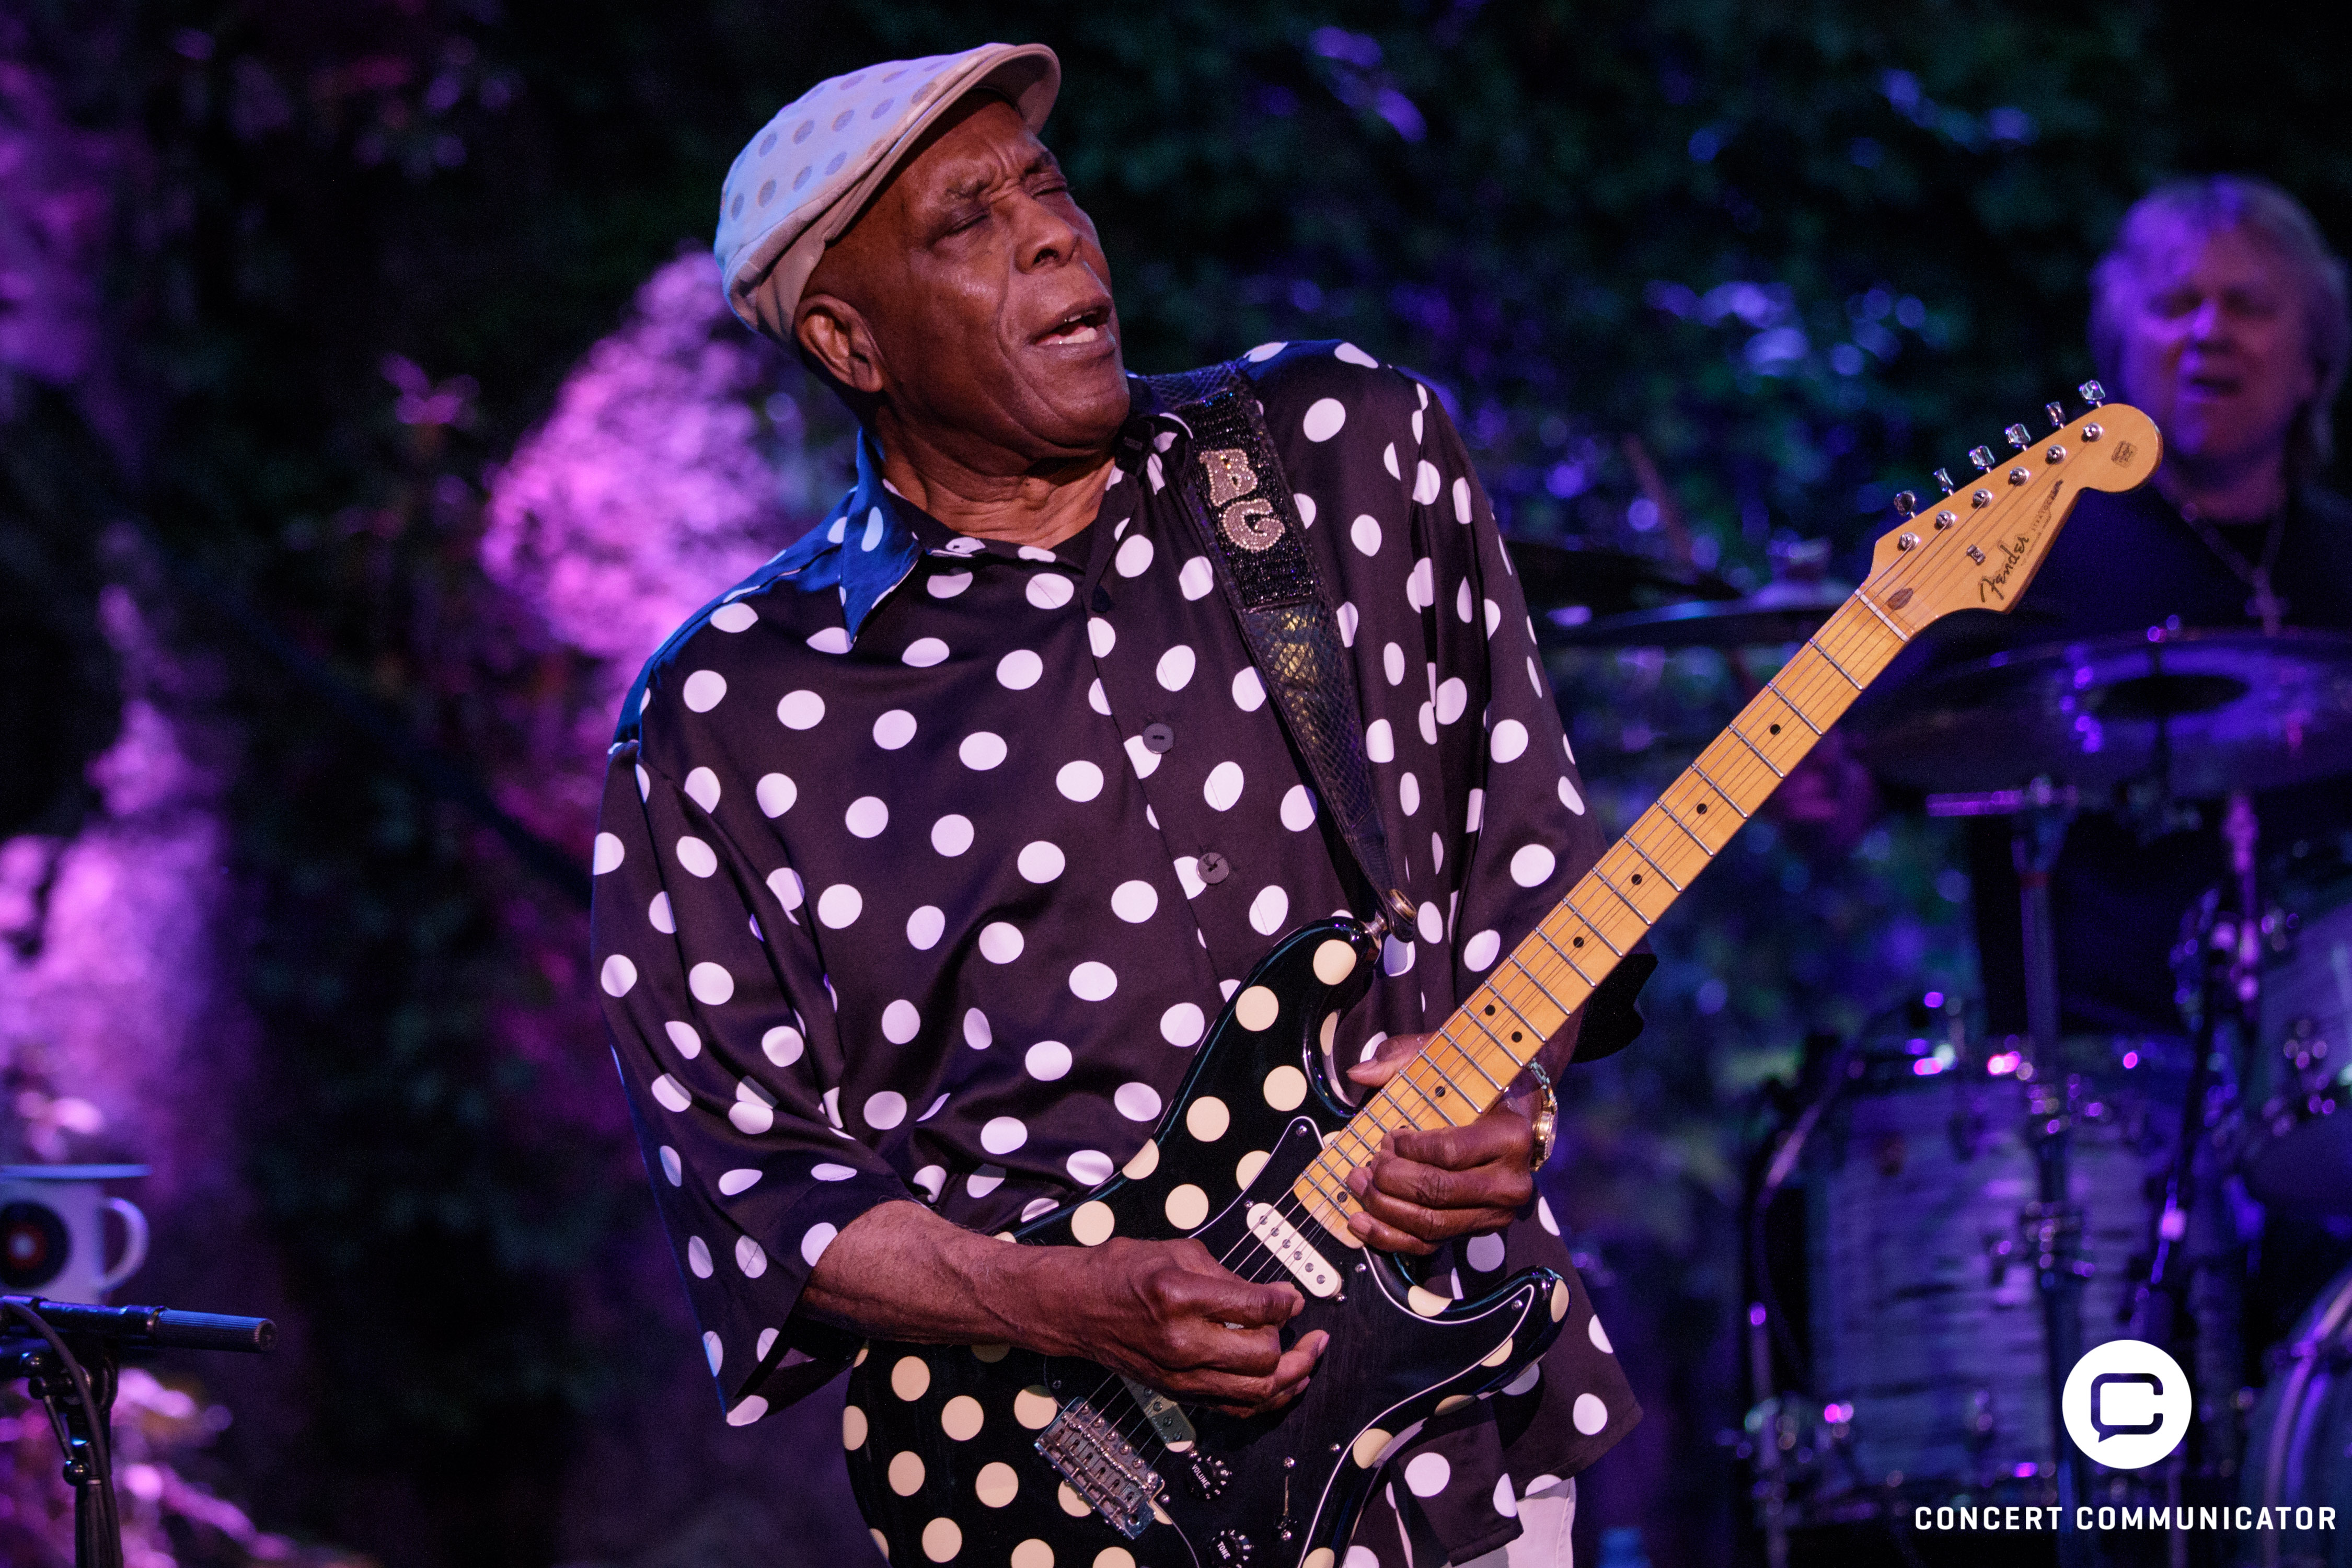 Buddy Guy @ Music in the Zoo